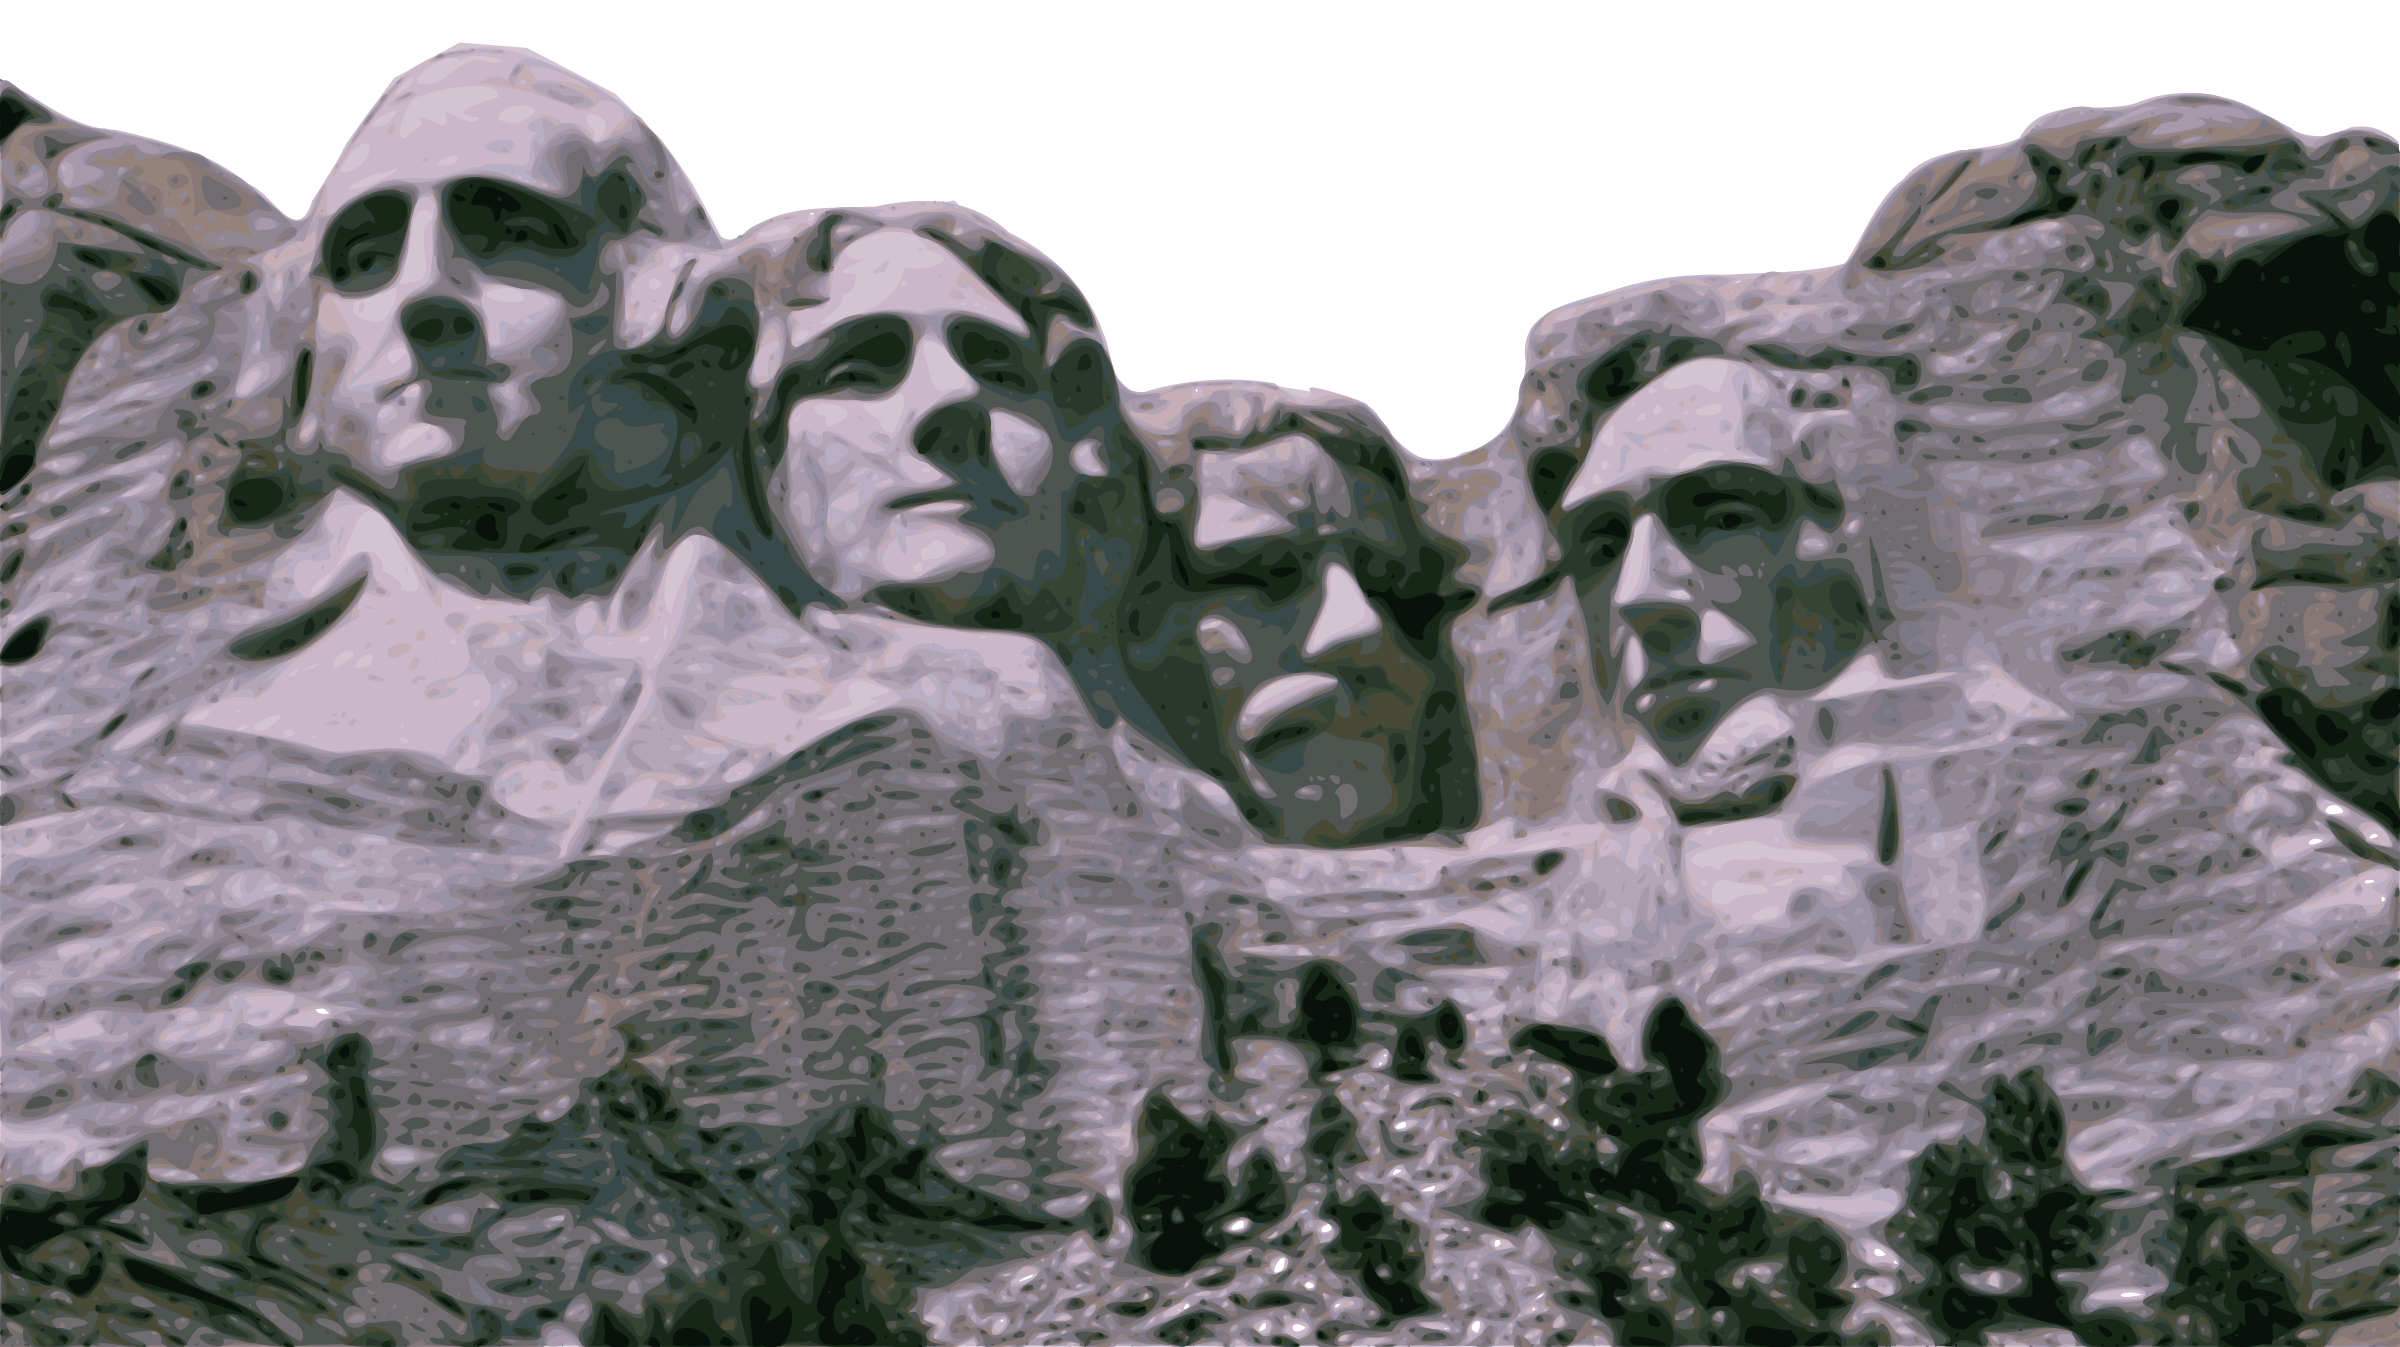 Mount Rushmore by gubrww2